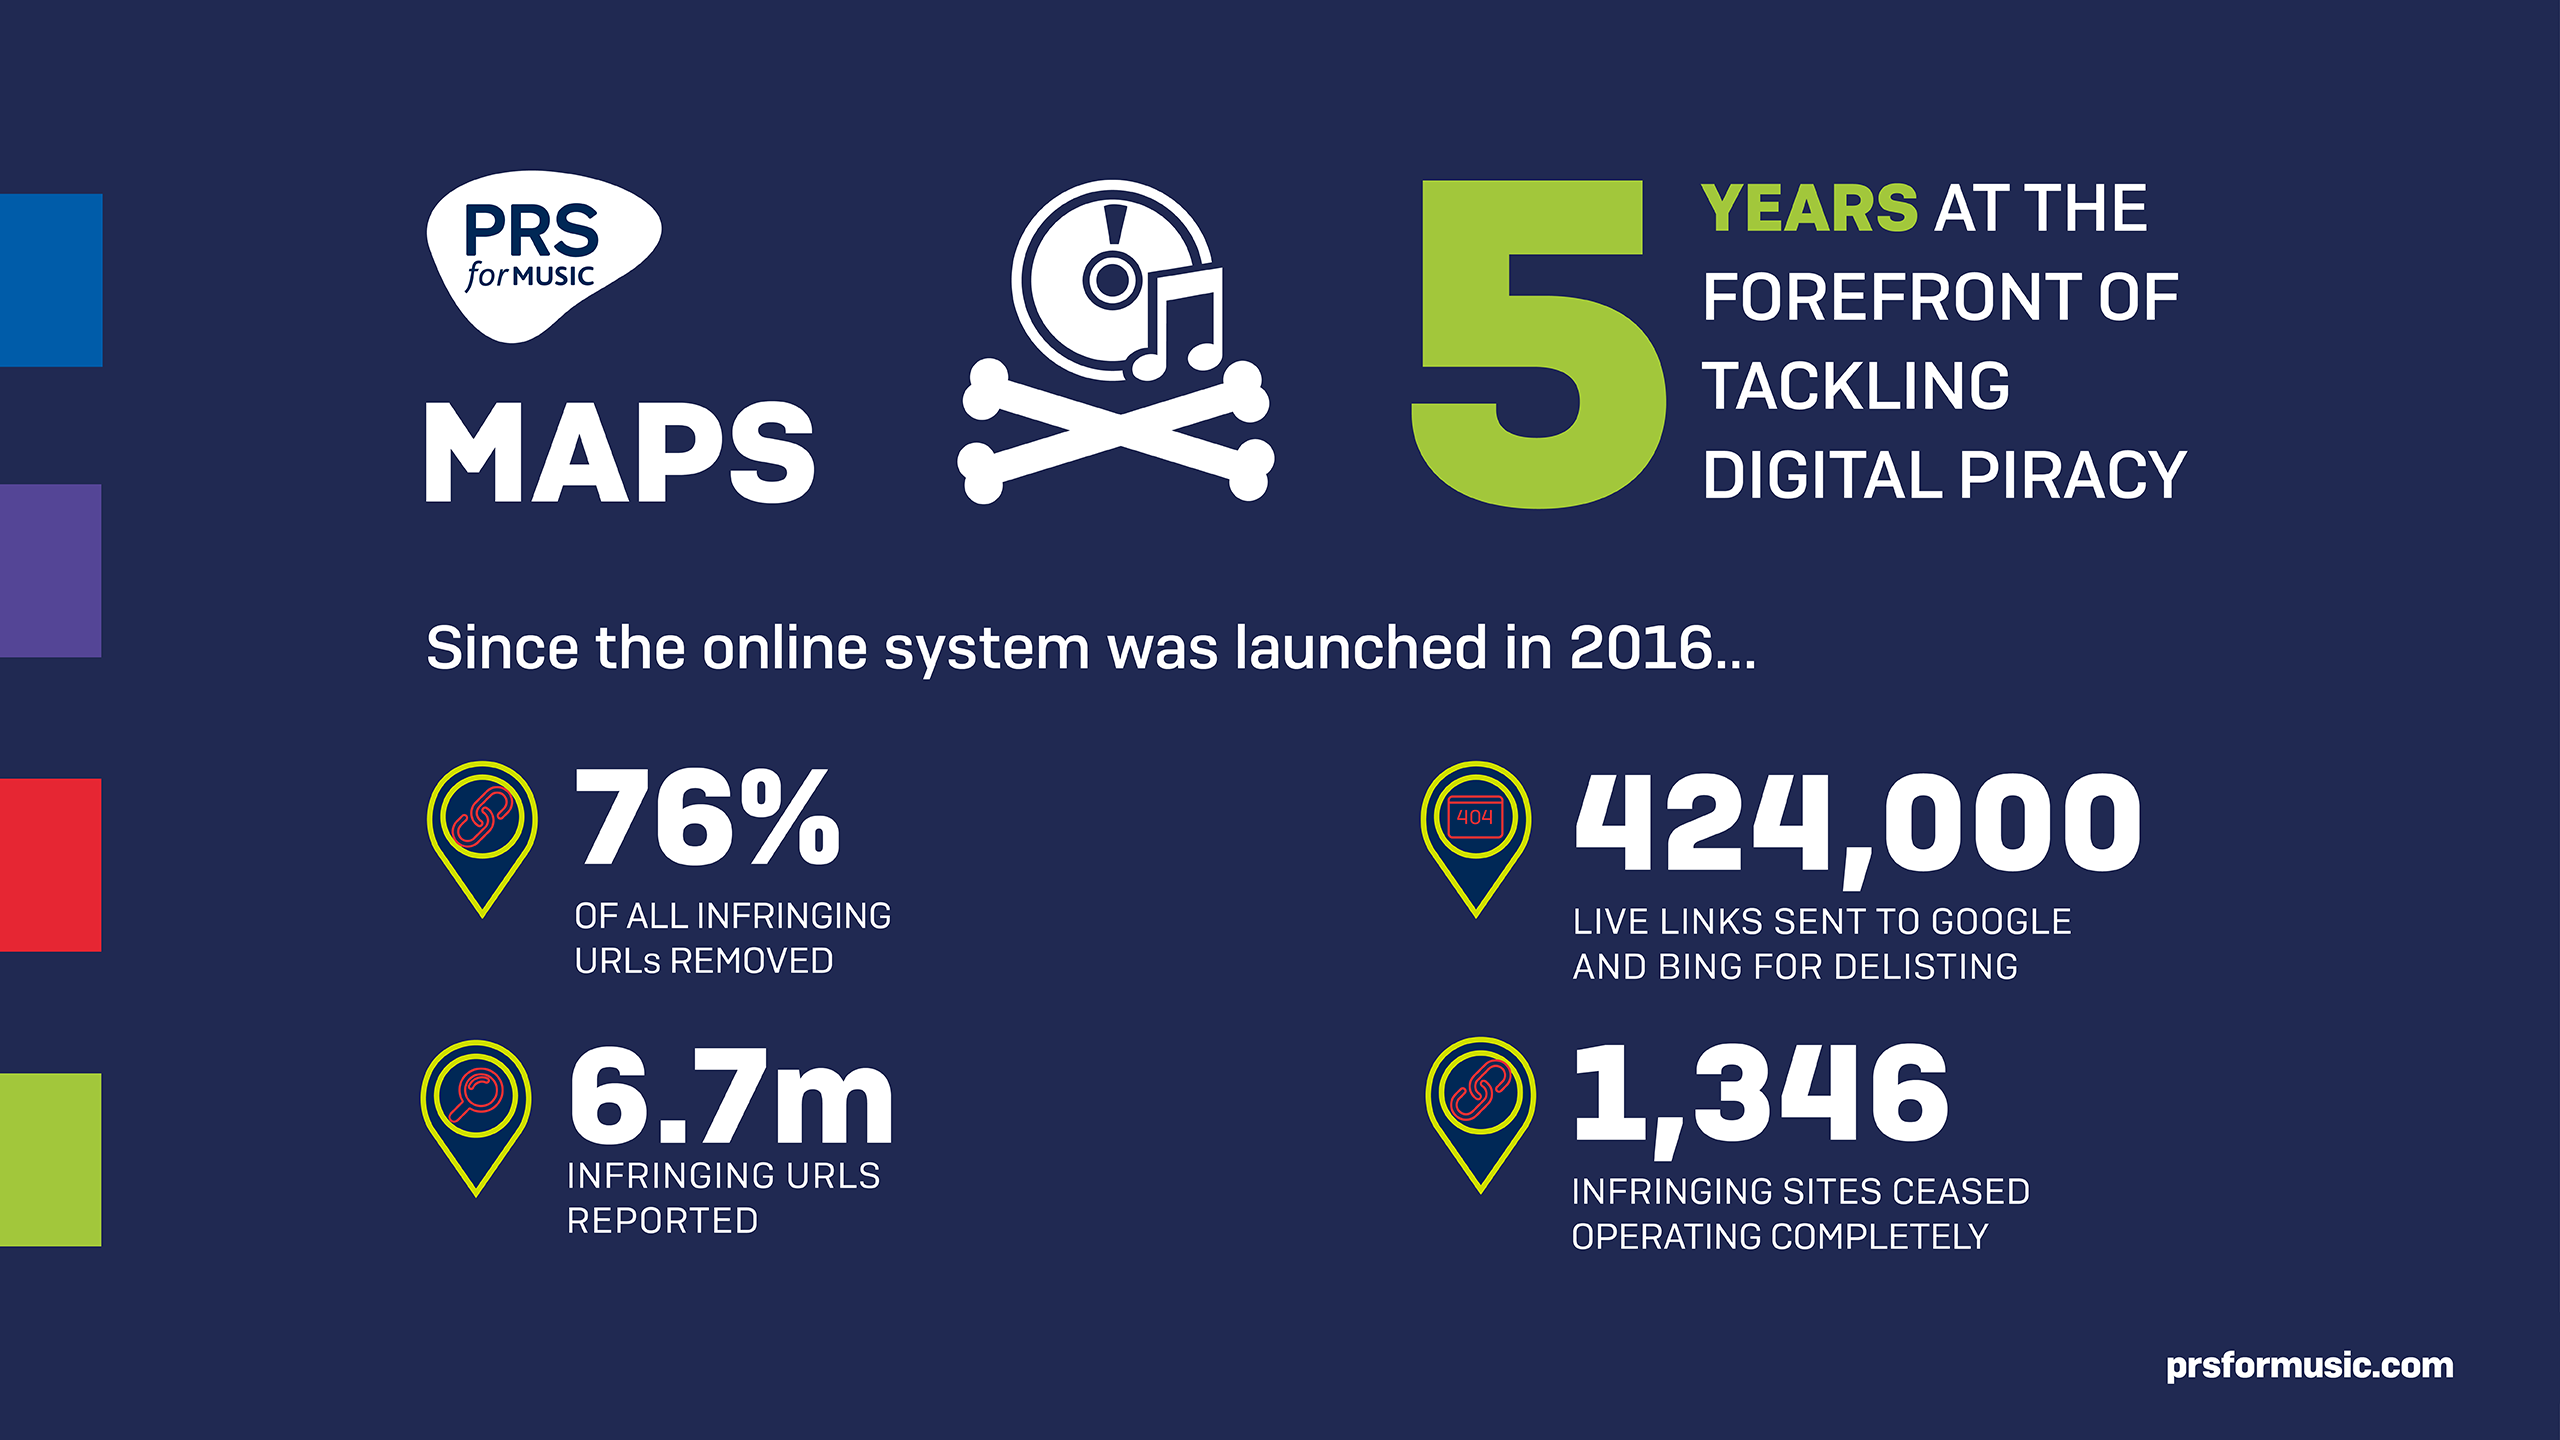 Infographic shows figures demonstrating the success of MAPS